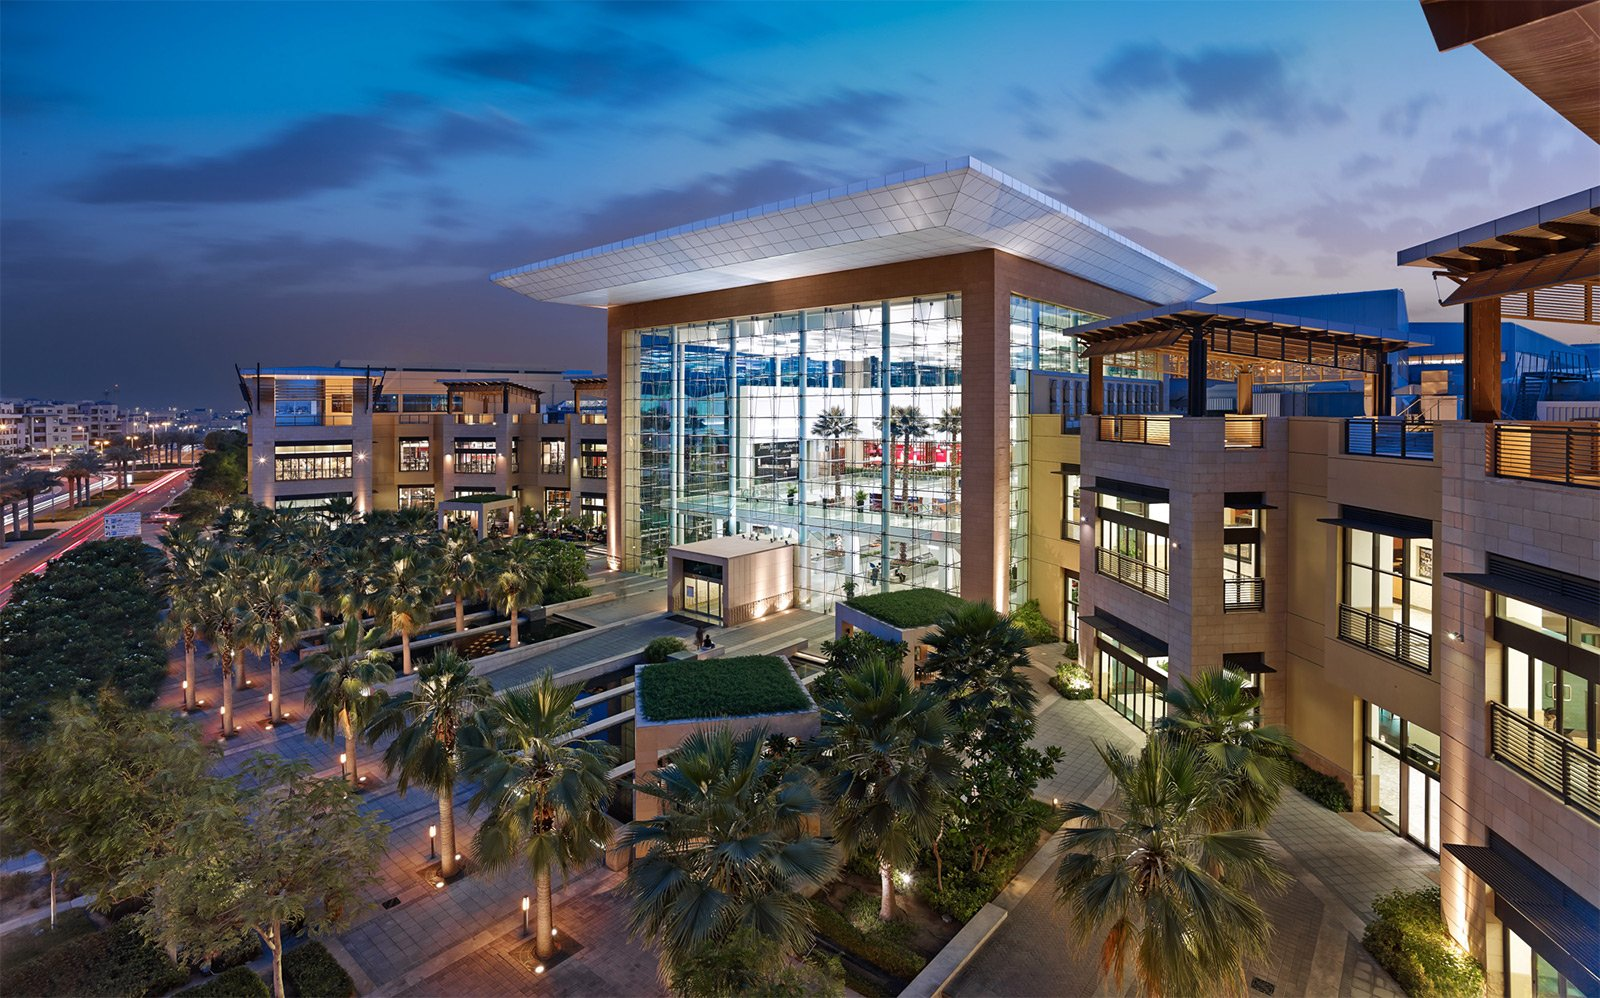 City Centre Mirdif, Dubai